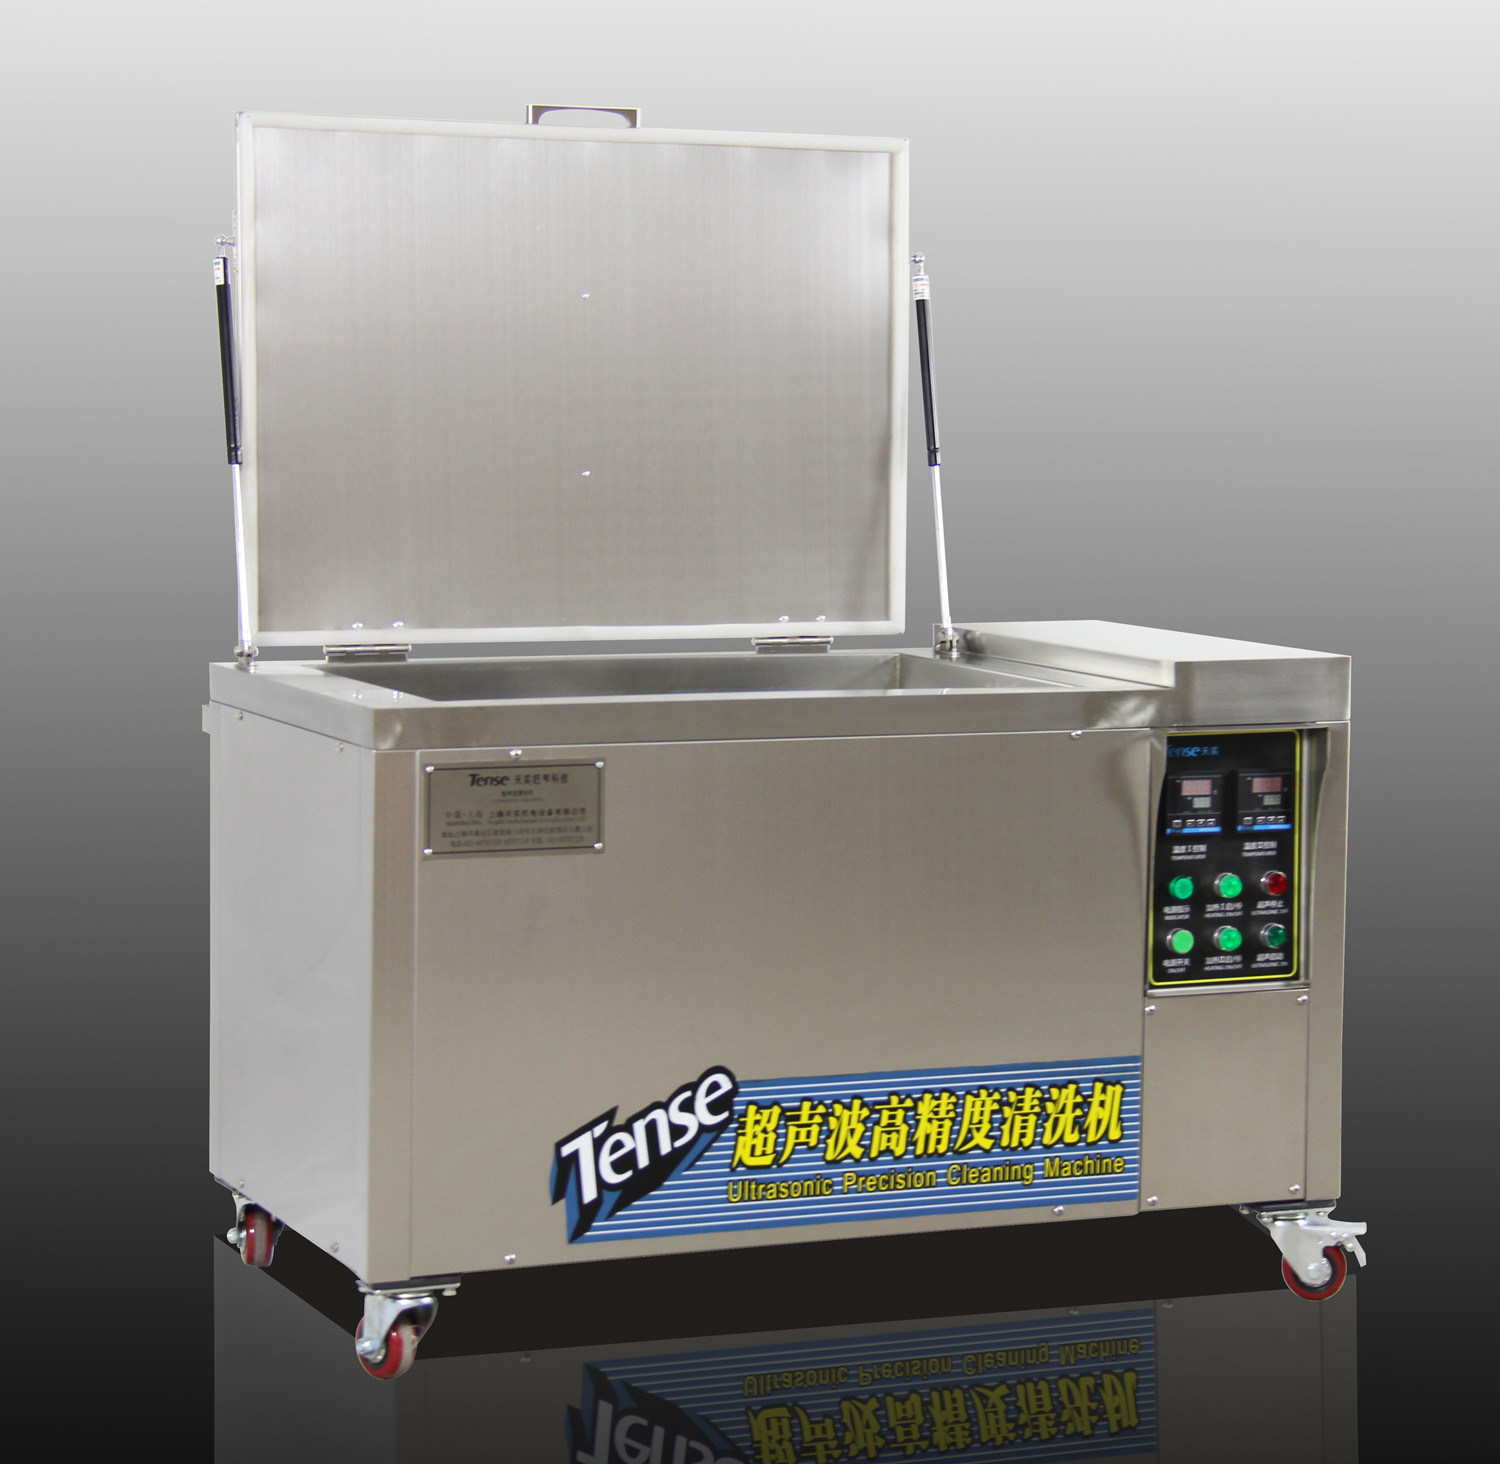 Ultrasonic Cleaner with Basket and Drain (TS-3600B)